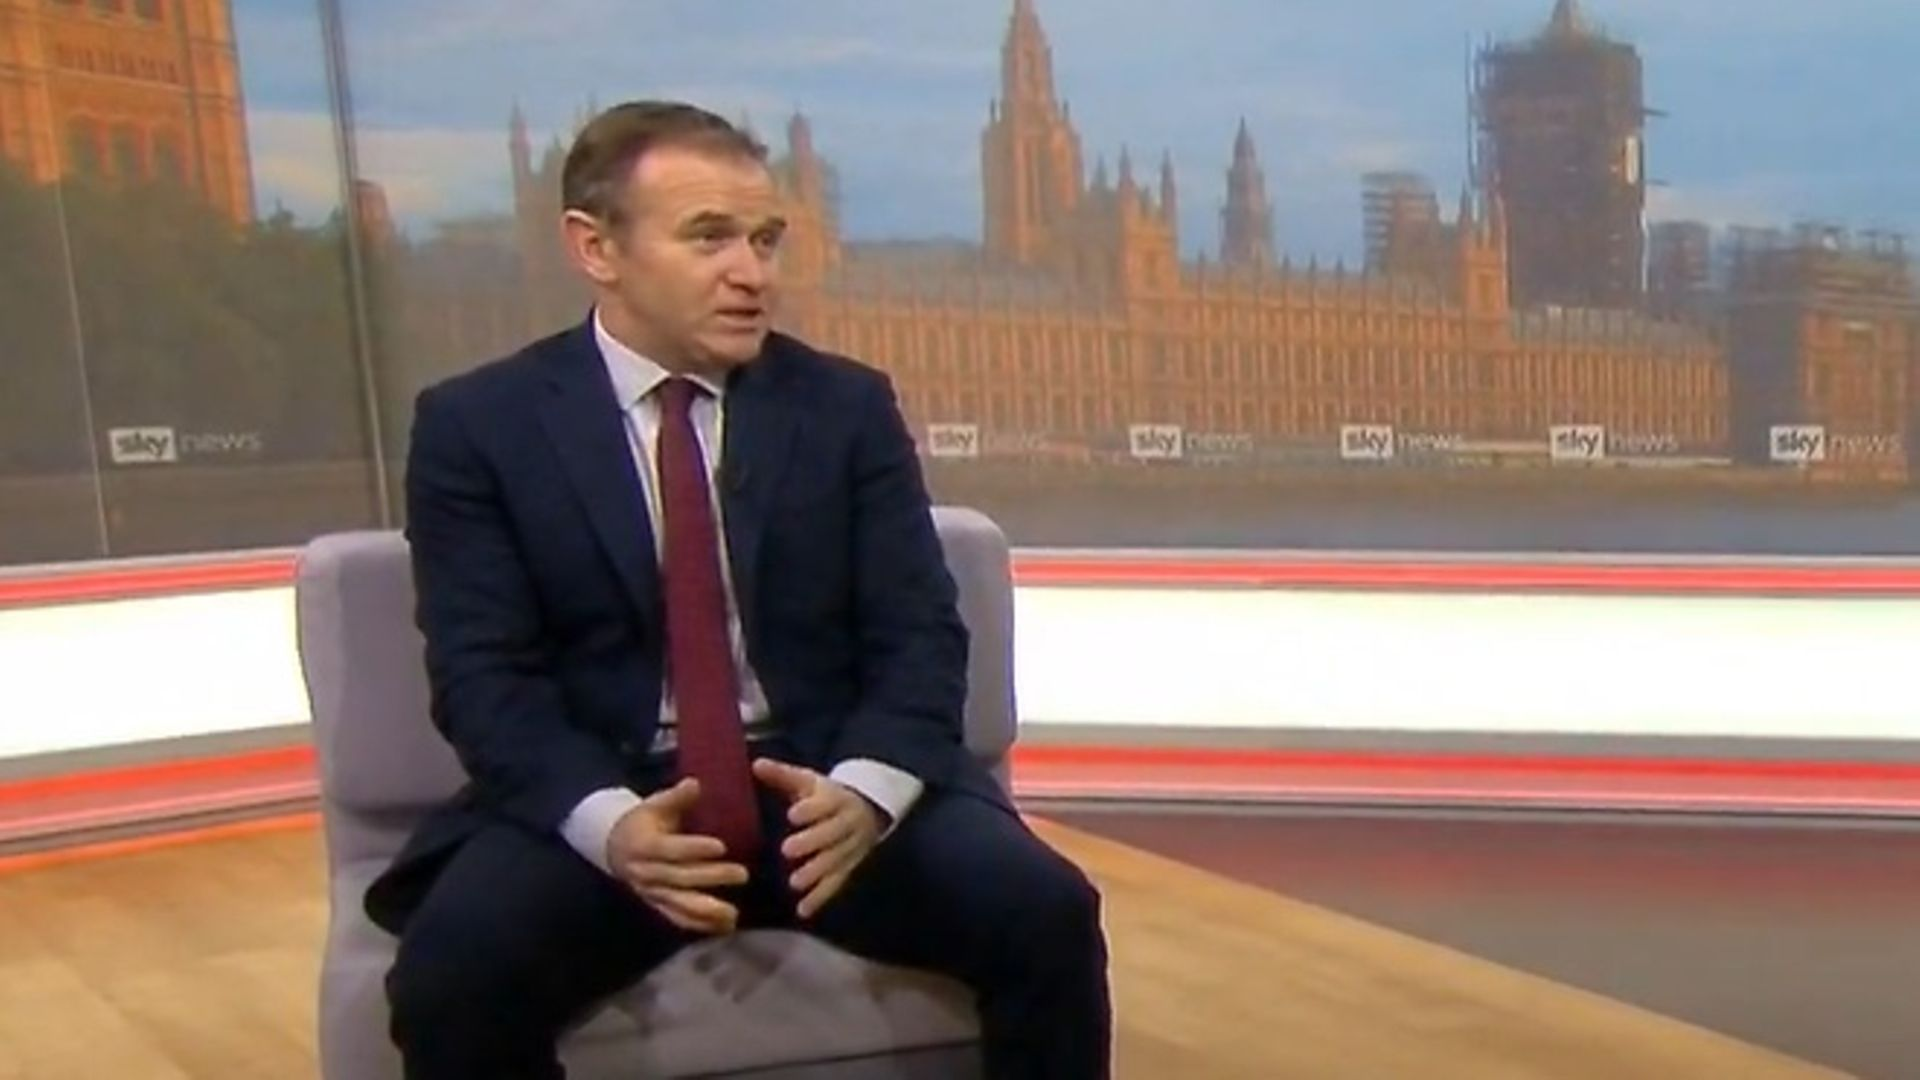 George Eustice answers questions on Brexit - Credit: Sky News